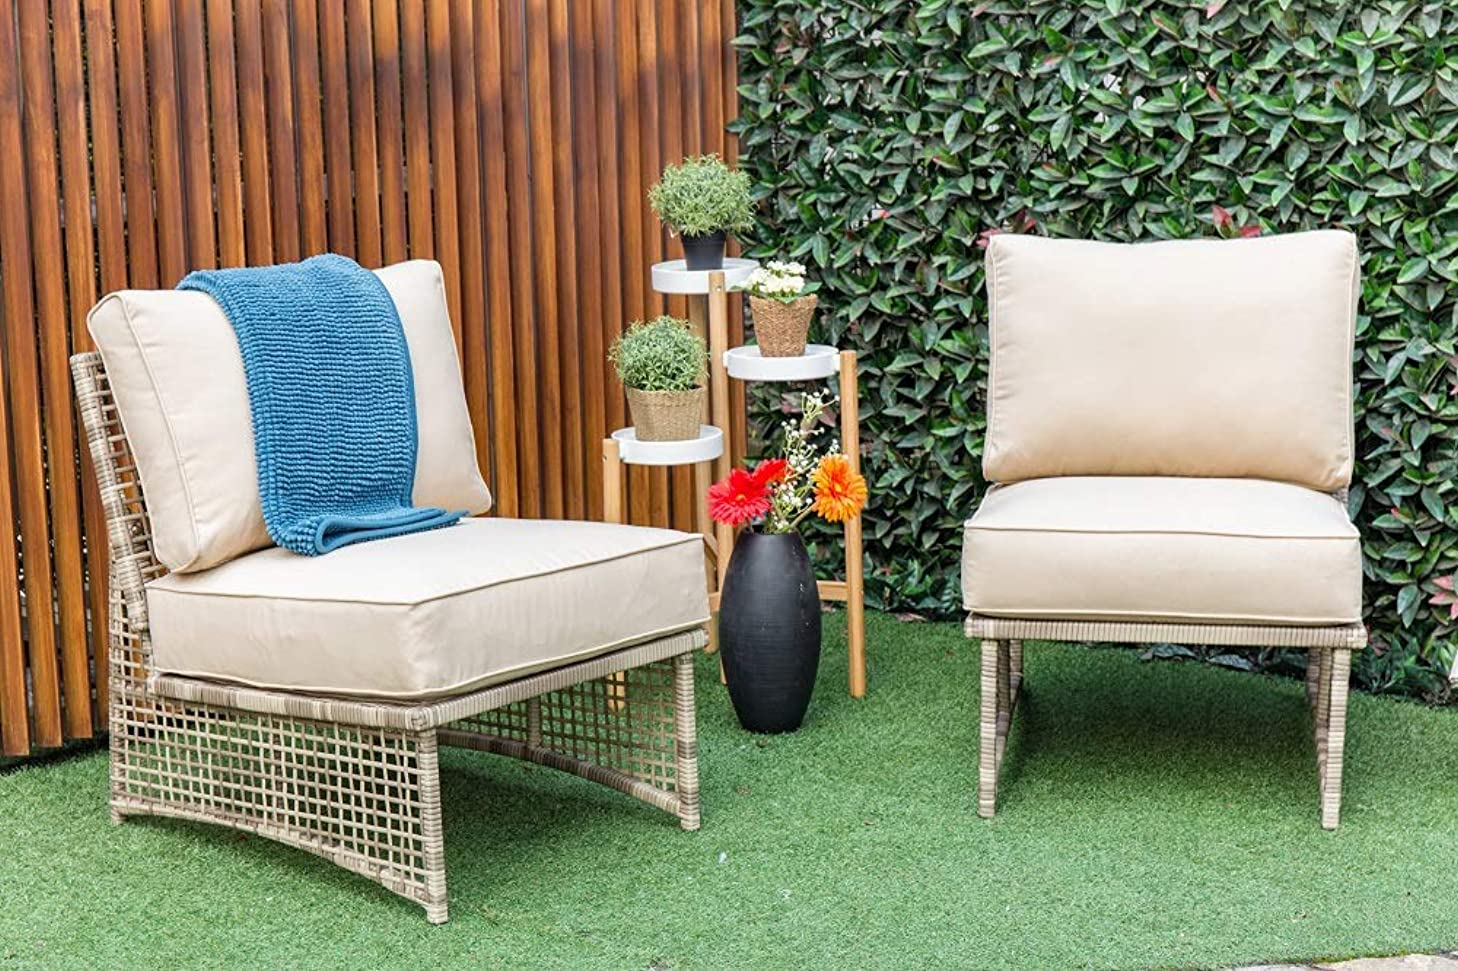 Gopatio 2 Pcs Patio Furniture Set - Outdoor Rattan Patio Chairs with Thick Cushions - Armless Sectional Sofa with Powder-Coated Steel Frame (Beige)